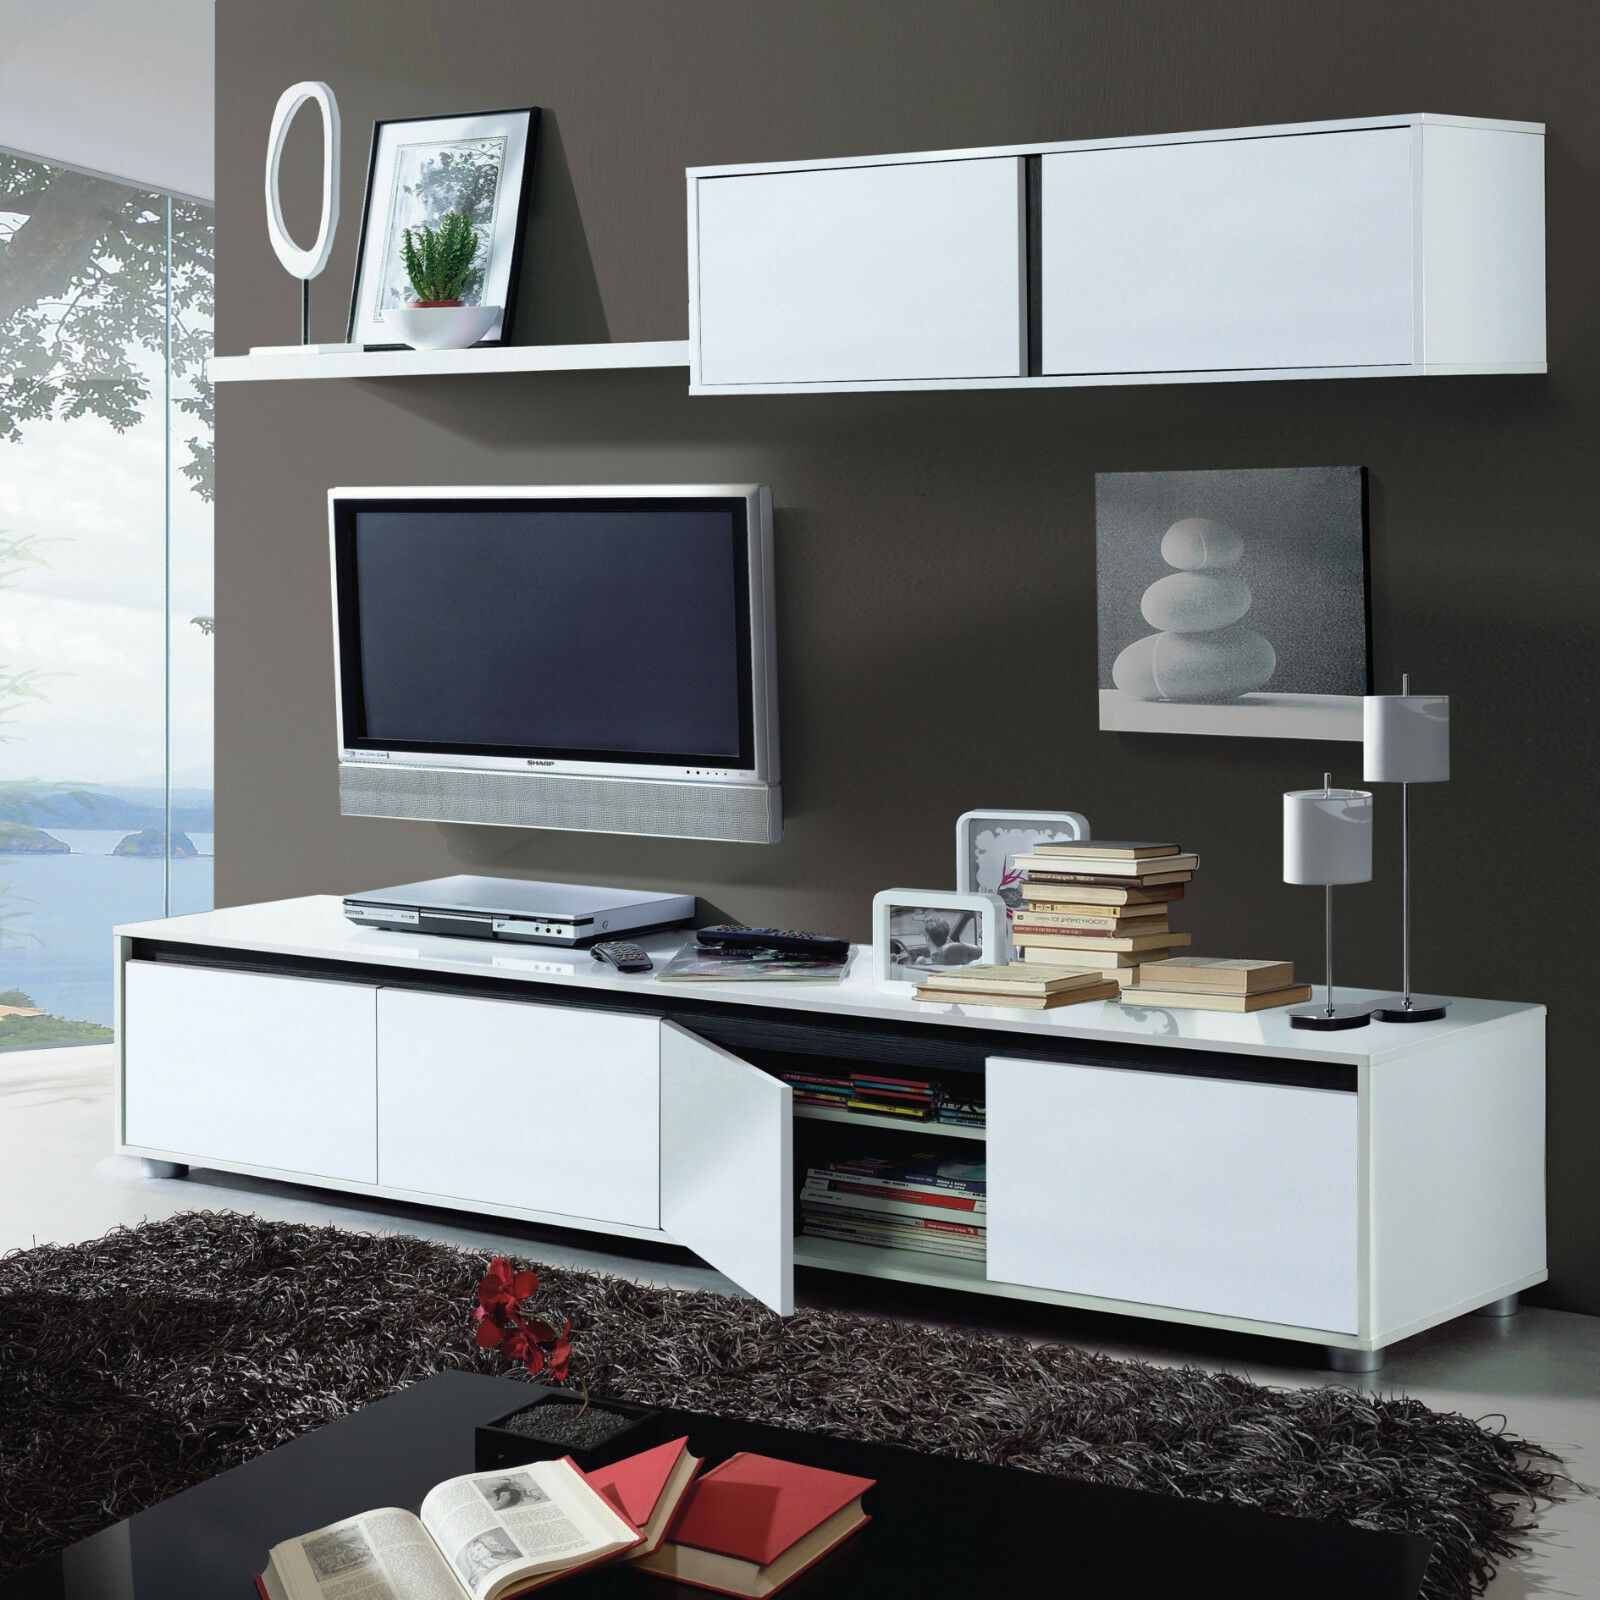 Amalia TV Unit Living Room Furniture Set Modular Media